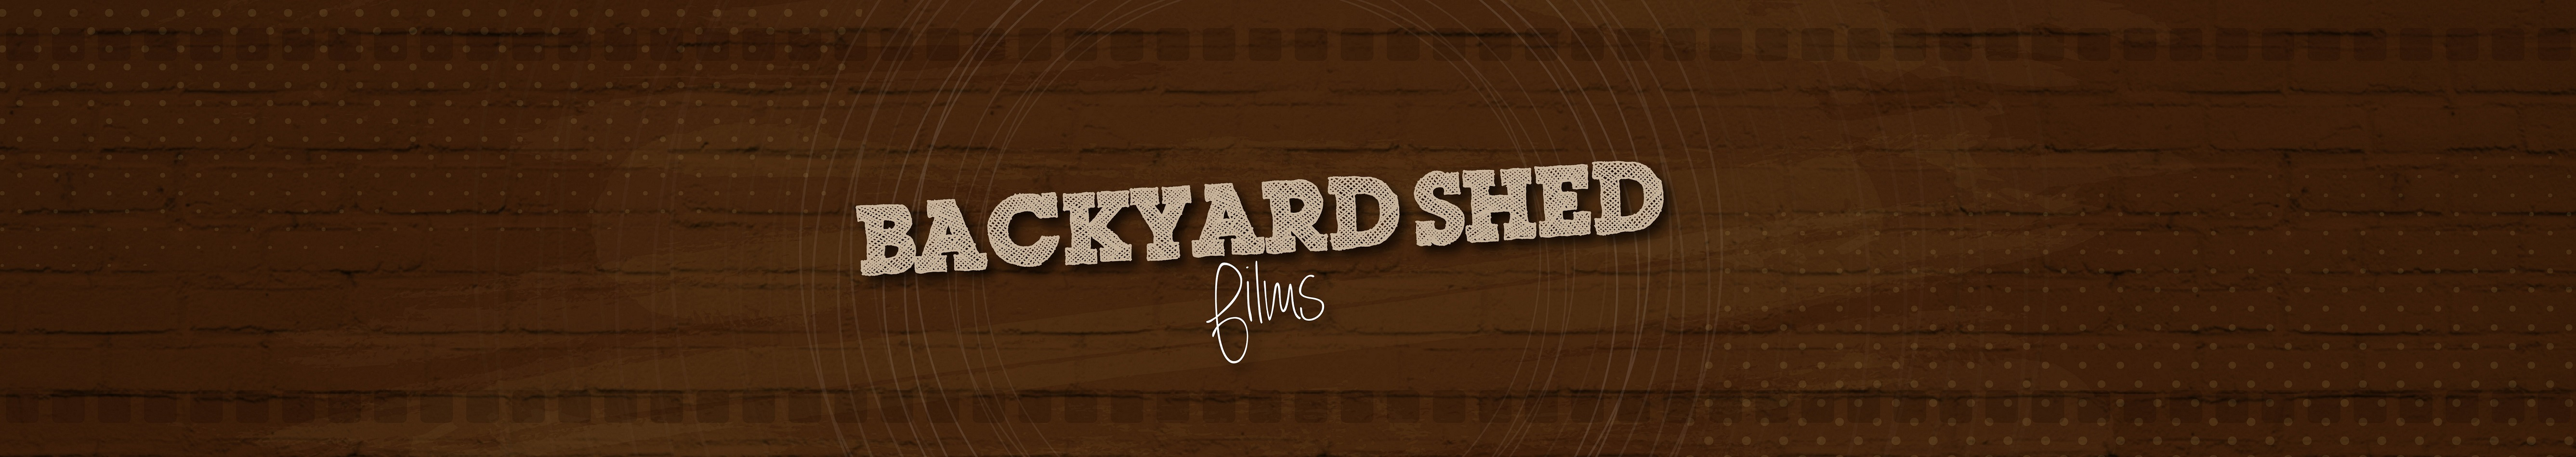 Movies | Backyard Shed Films